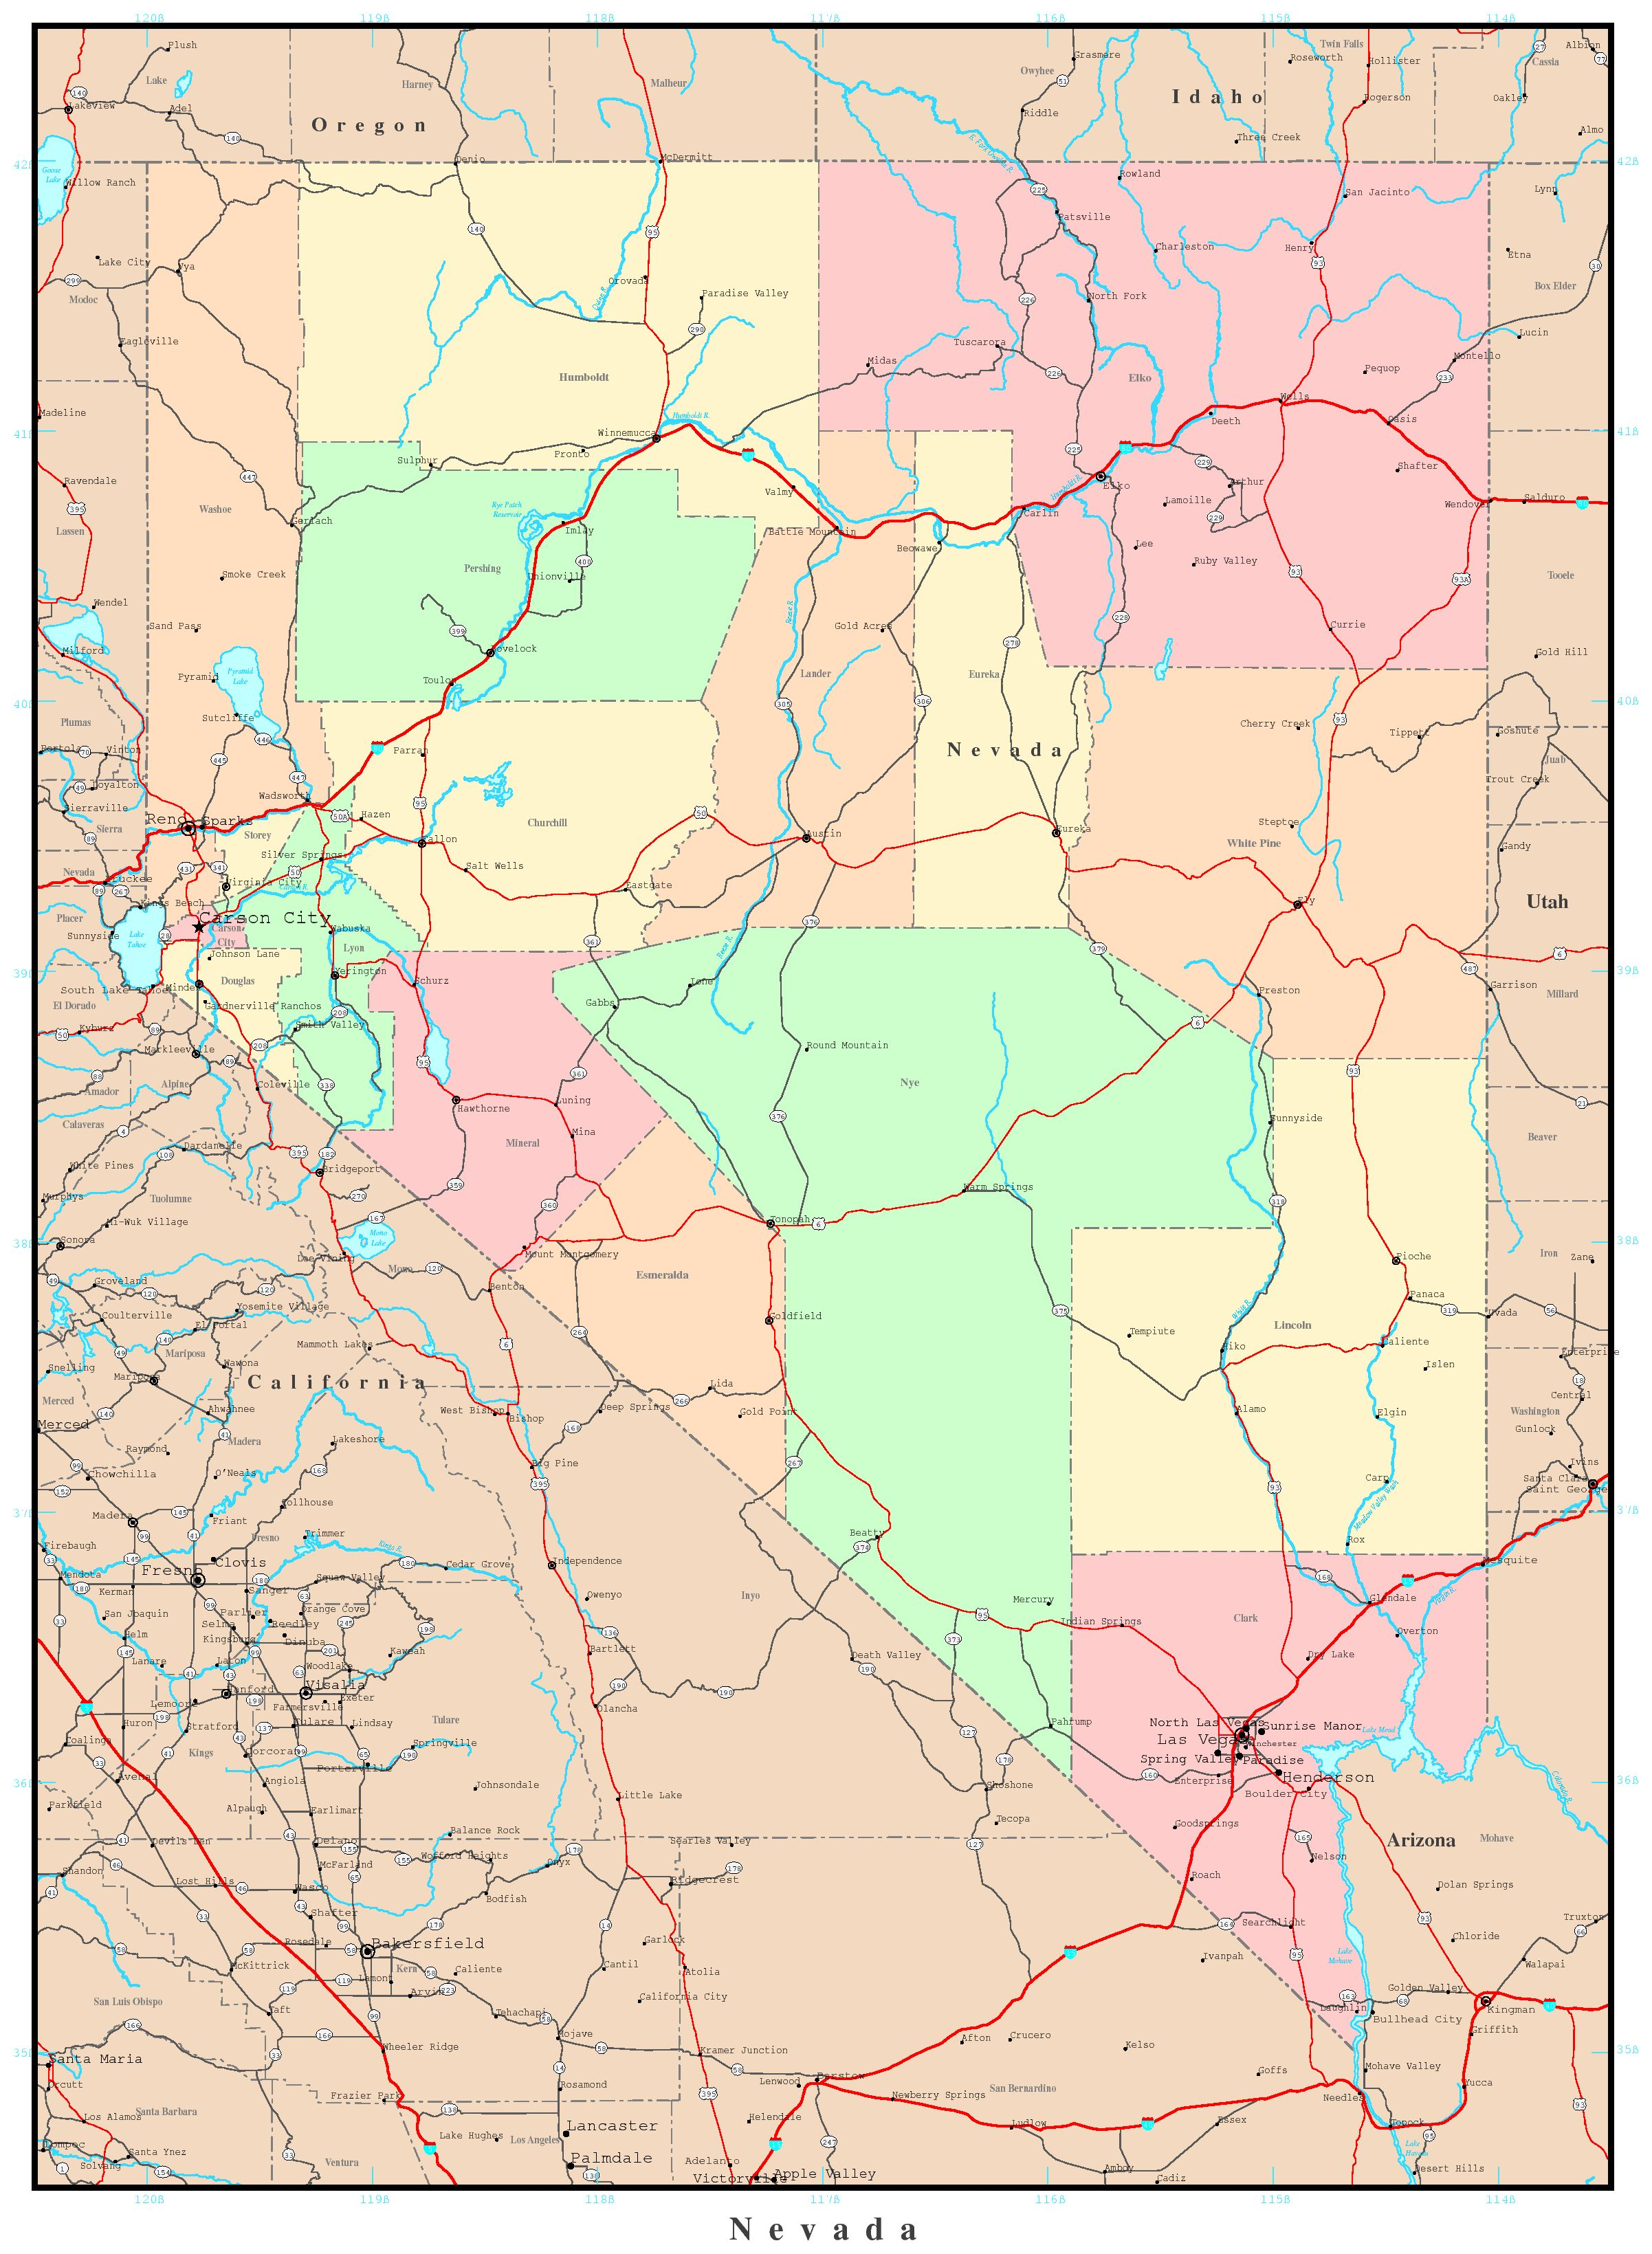 Nevada Political Map - Map of nevada